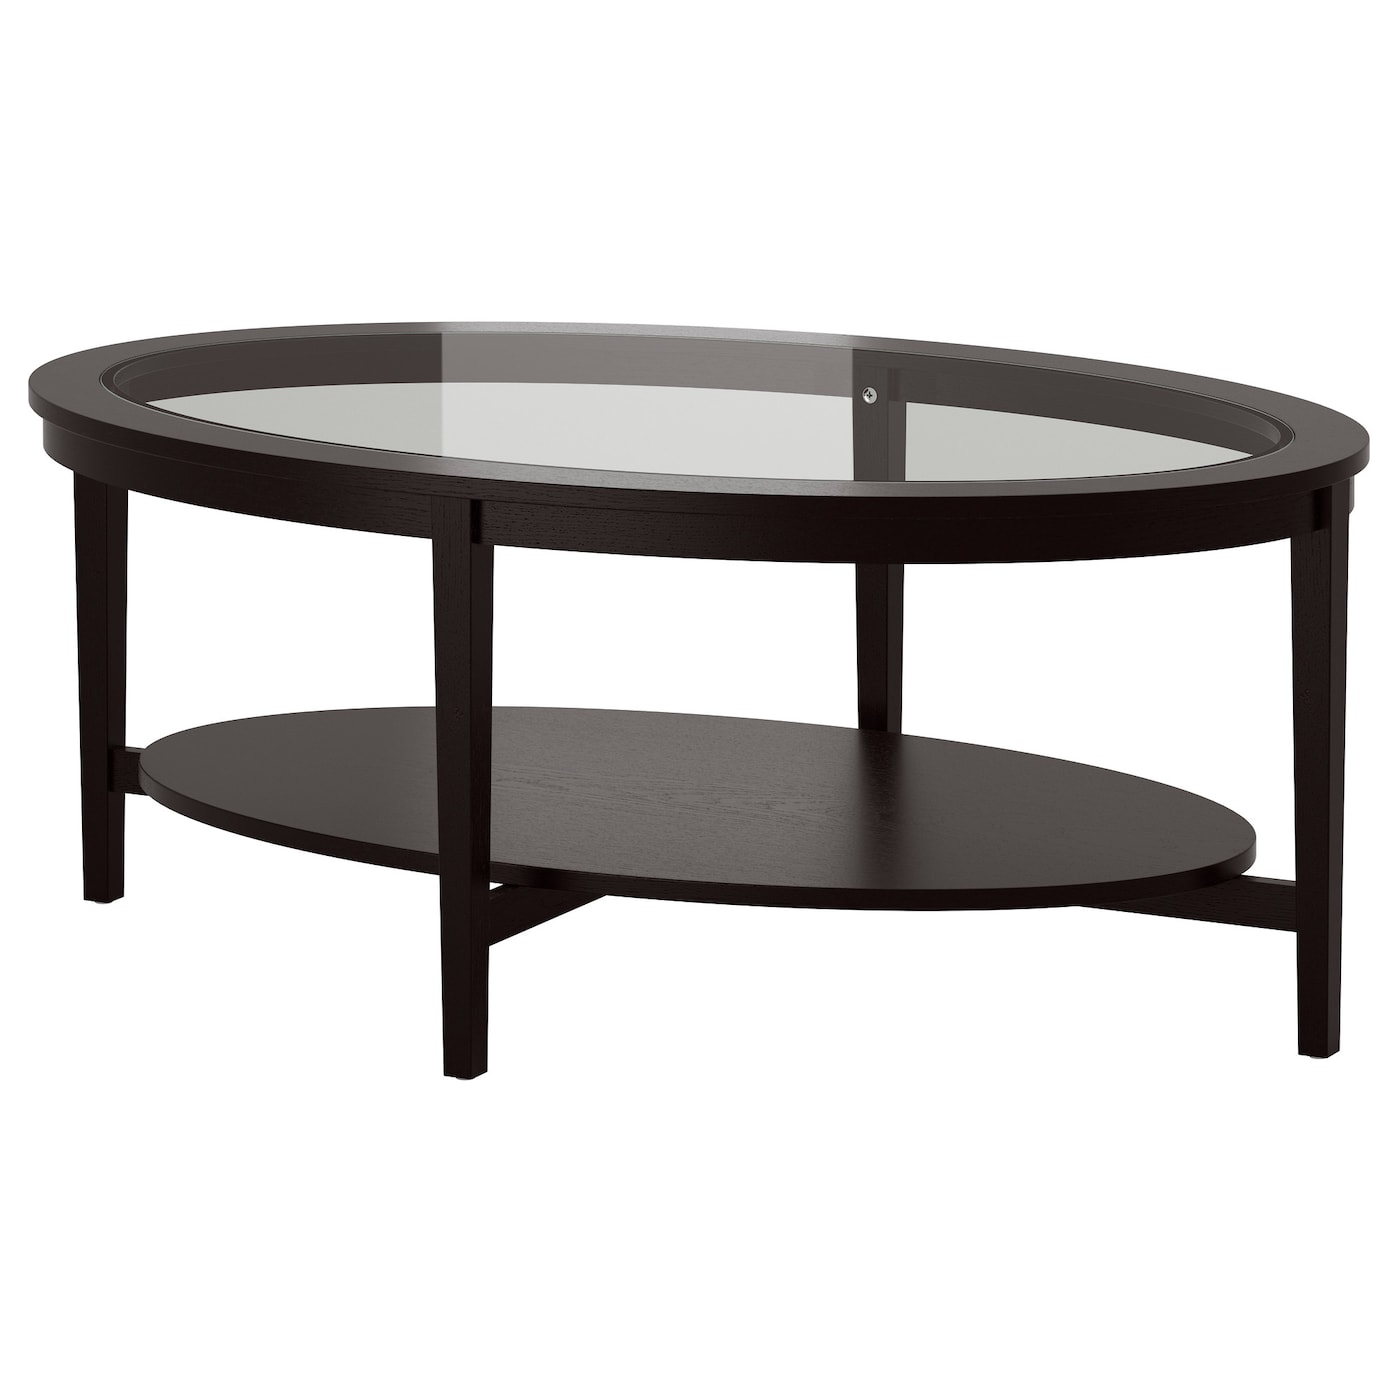 black furniture ikea. IKEA MALMSTA Coffee Table Veneered Surface Gives The A Natural Look And Feel Black Furniture Ikea